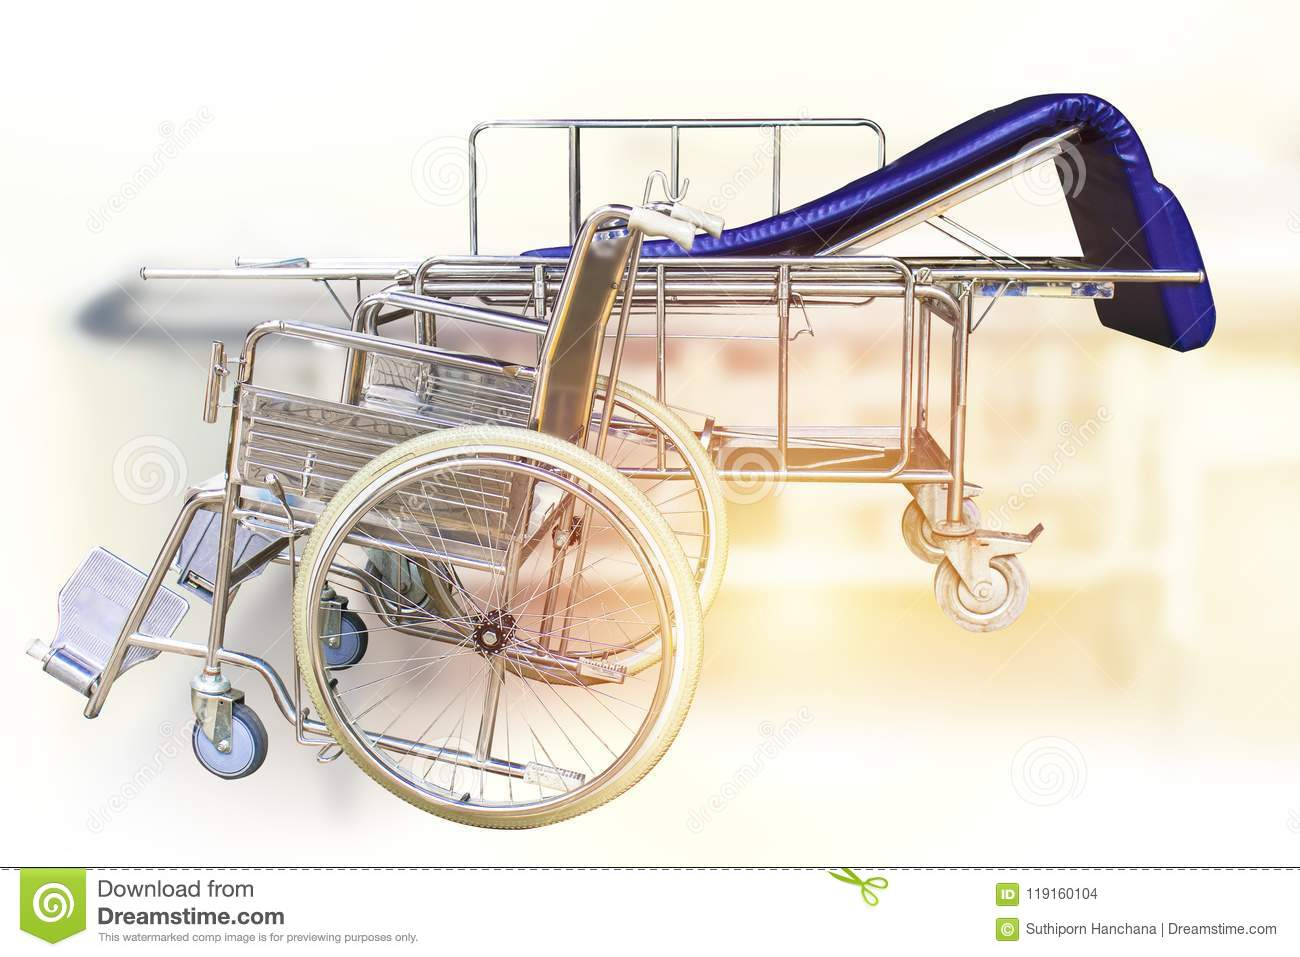 Bed Wheelchair Wheelchairs And Hospital Bed Waiting For Services Stock Photo